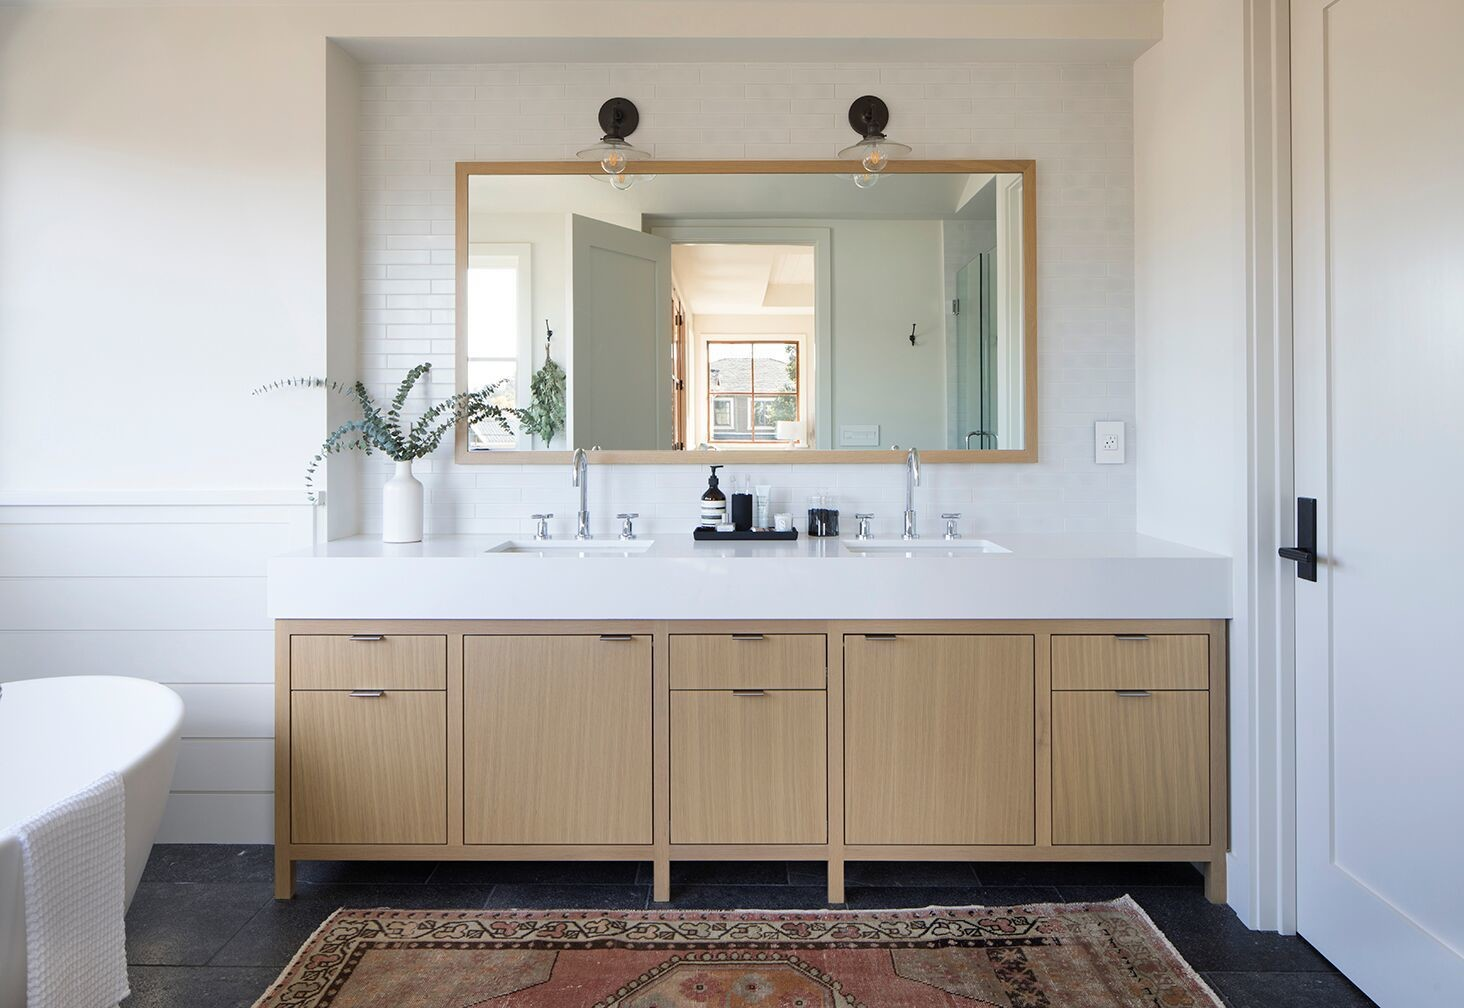 The master bath also features stunning light wood cabinetry and a perfect, warm area rug.